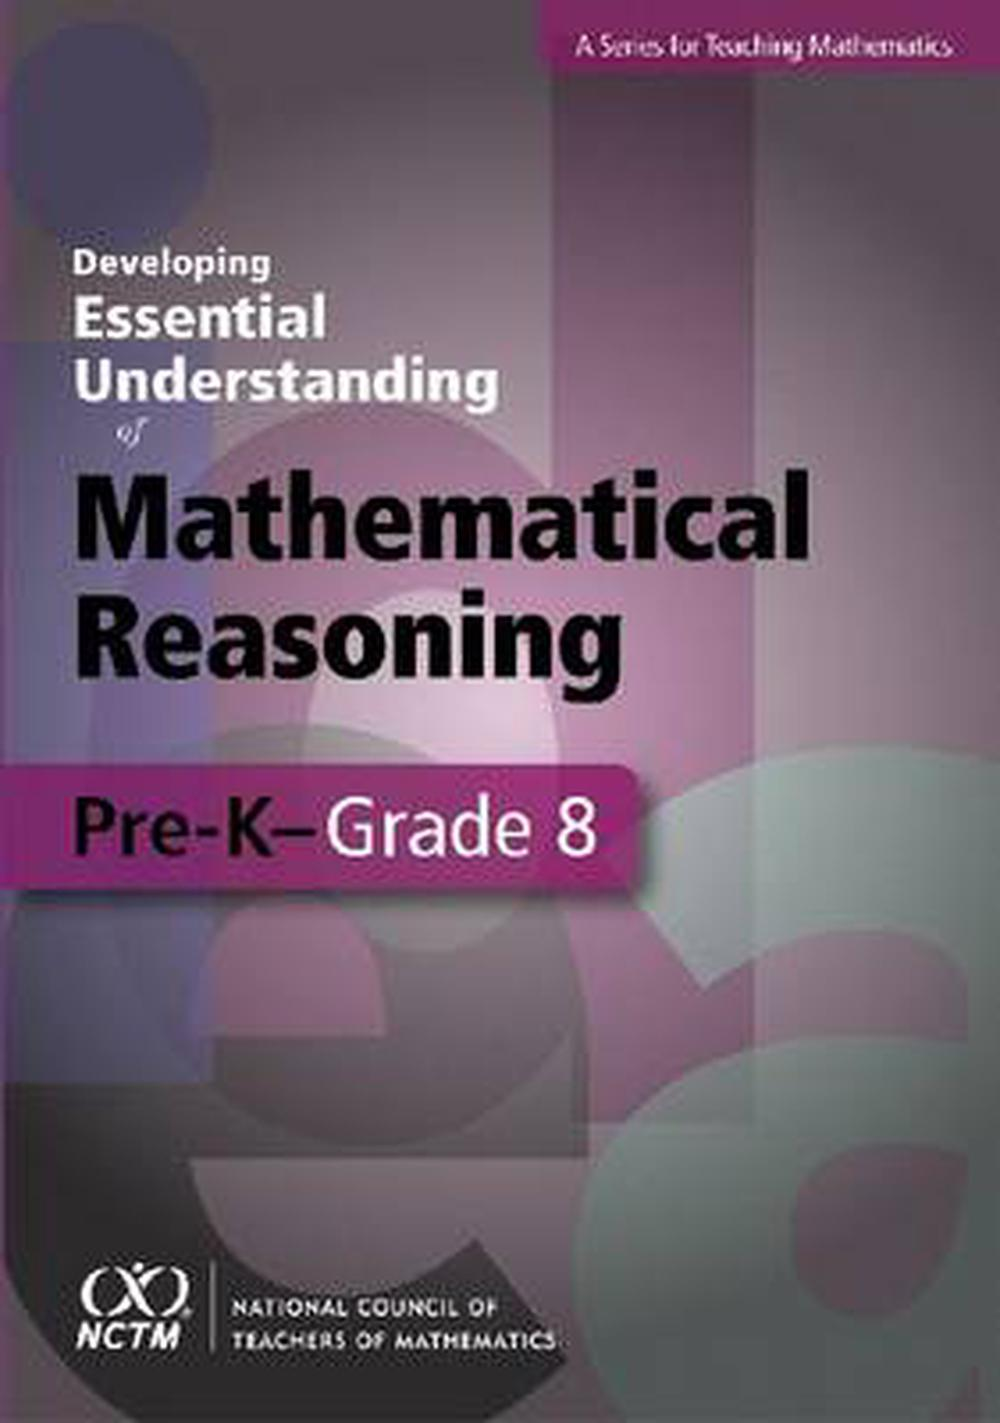 Developing Essential Understanding - Mathematical Reasoning in Grades Pre-k- Grade 8